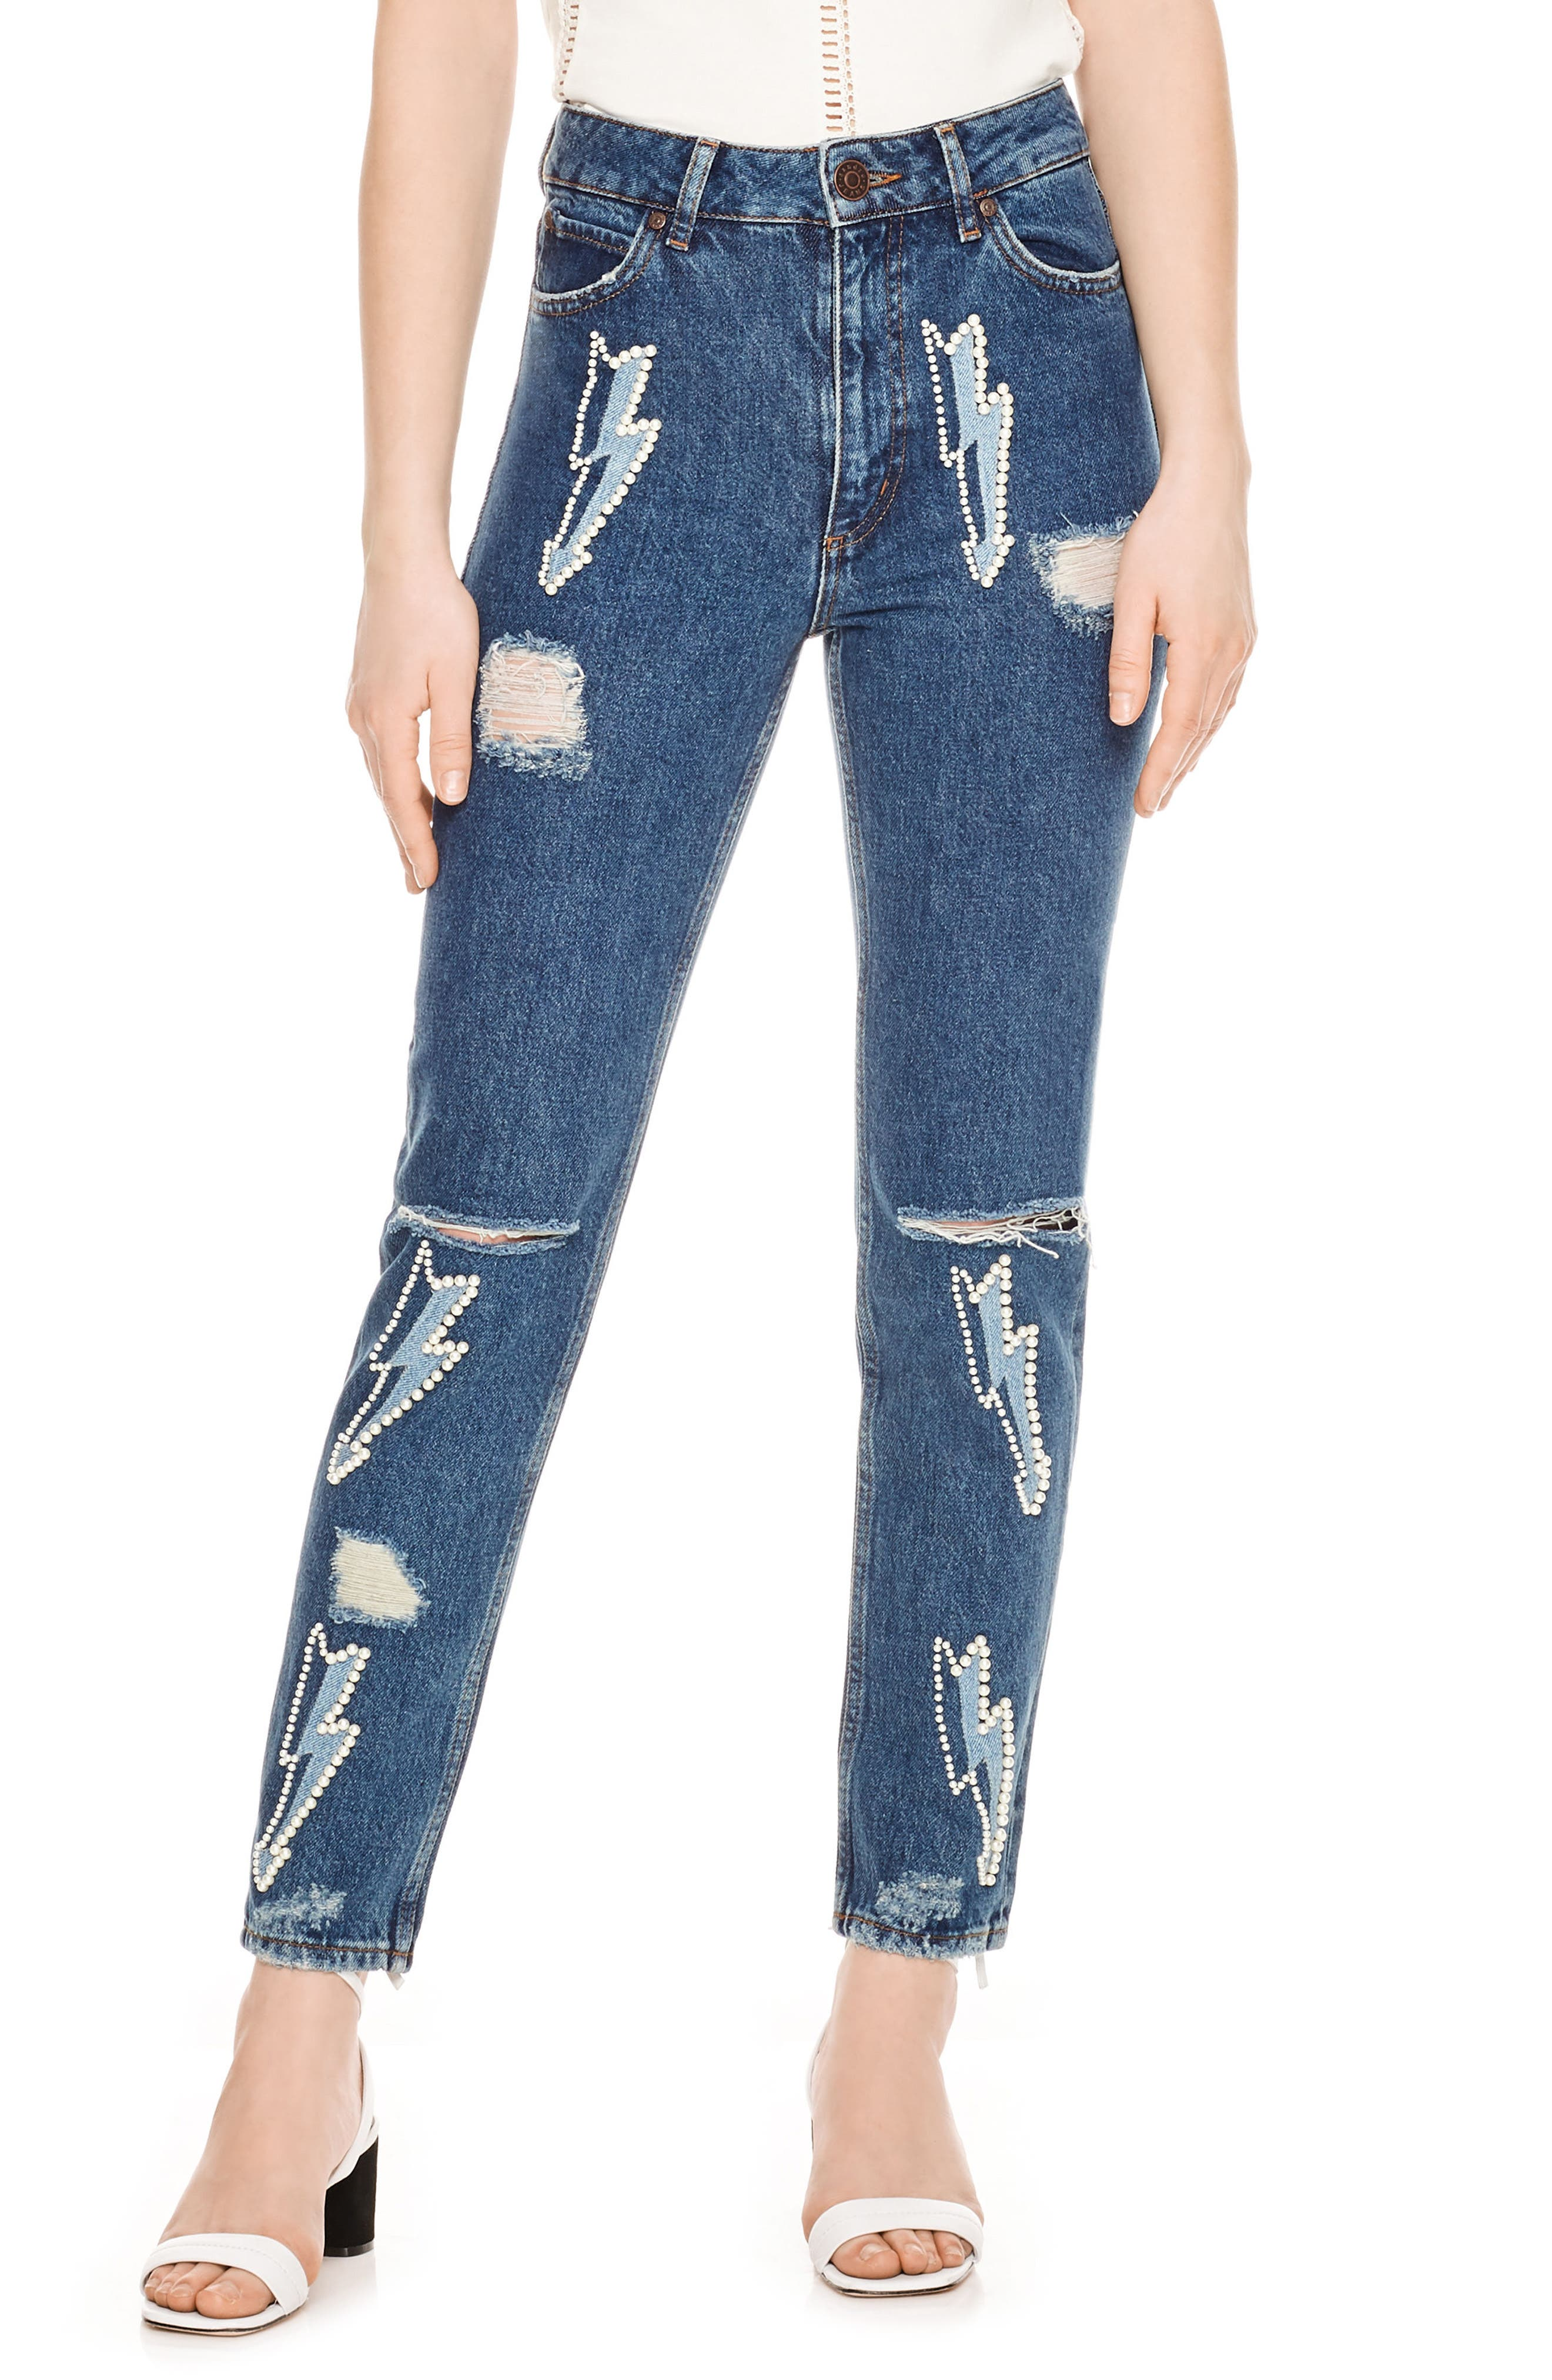 Ripped Lighting Bolt Jeans,                             Main thumbnail 1, color,                             Blue Vintage - Denim